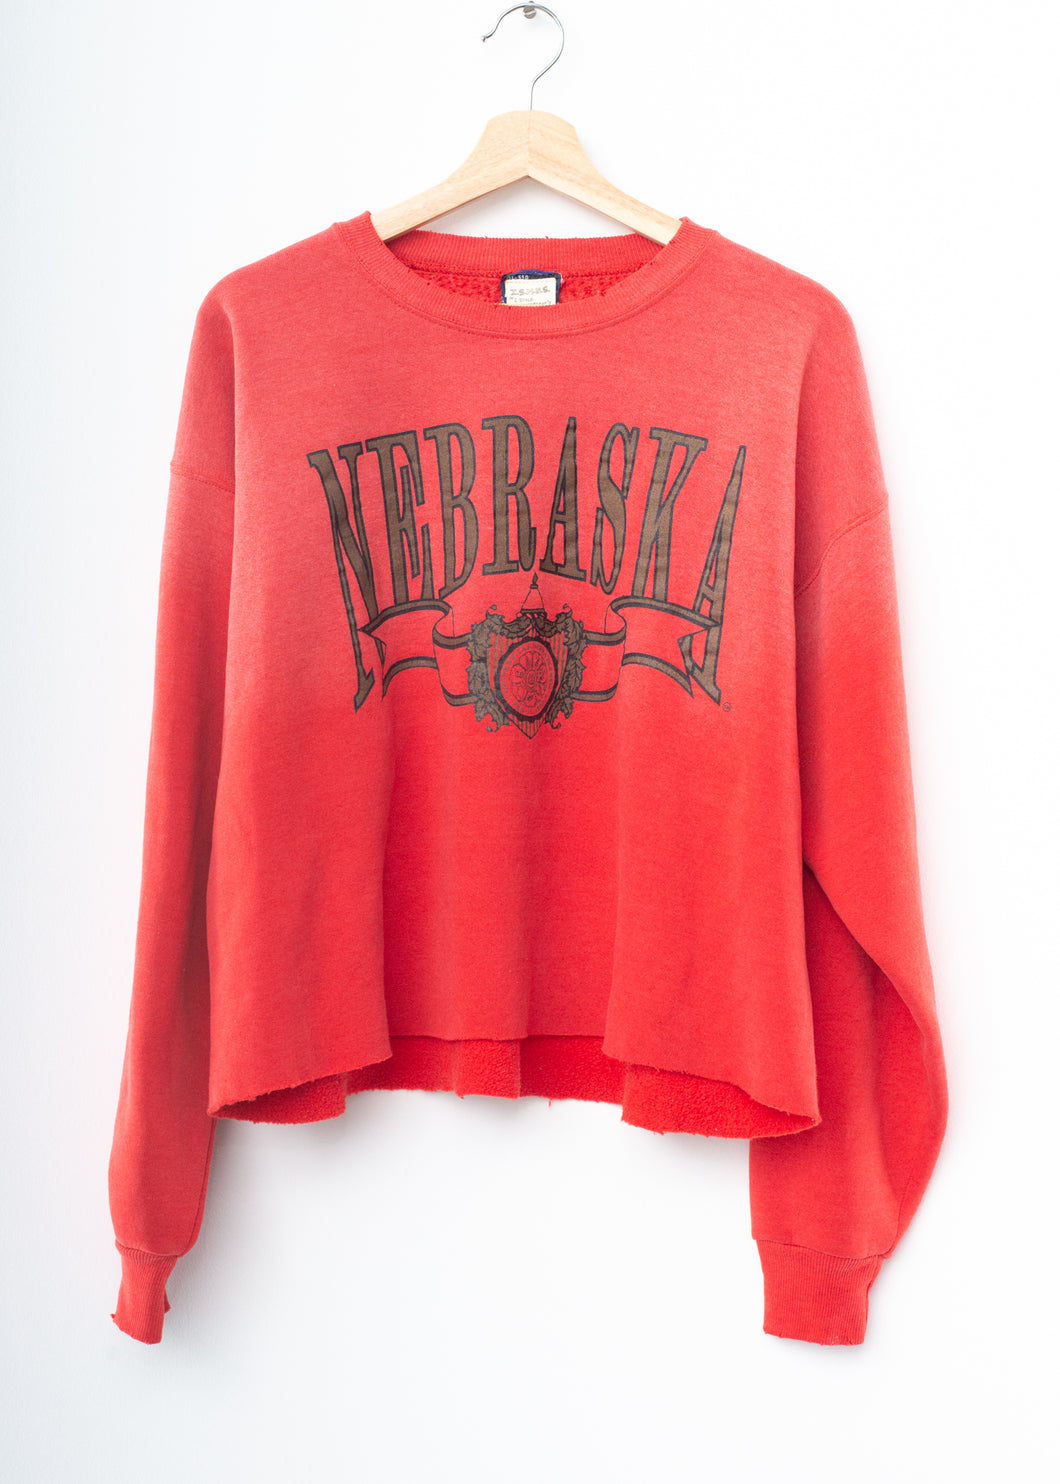 Nebraska Crop Sweatshirt